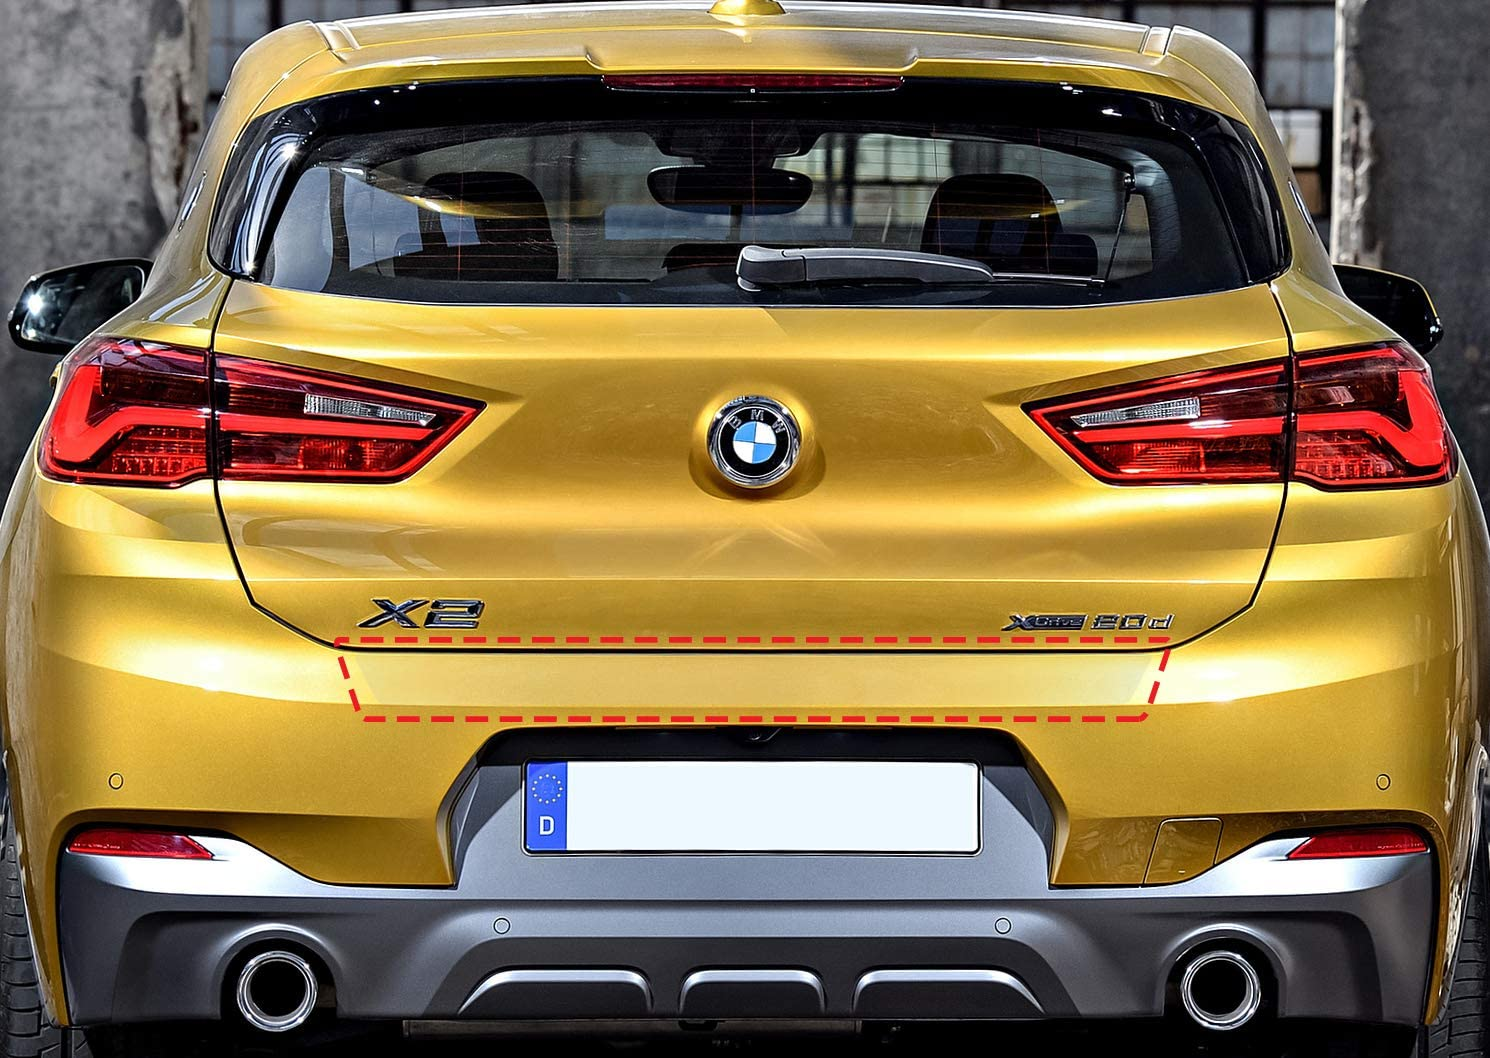 type f39 Paint Protection Film Bumper Protector Film Fit For BMW x2